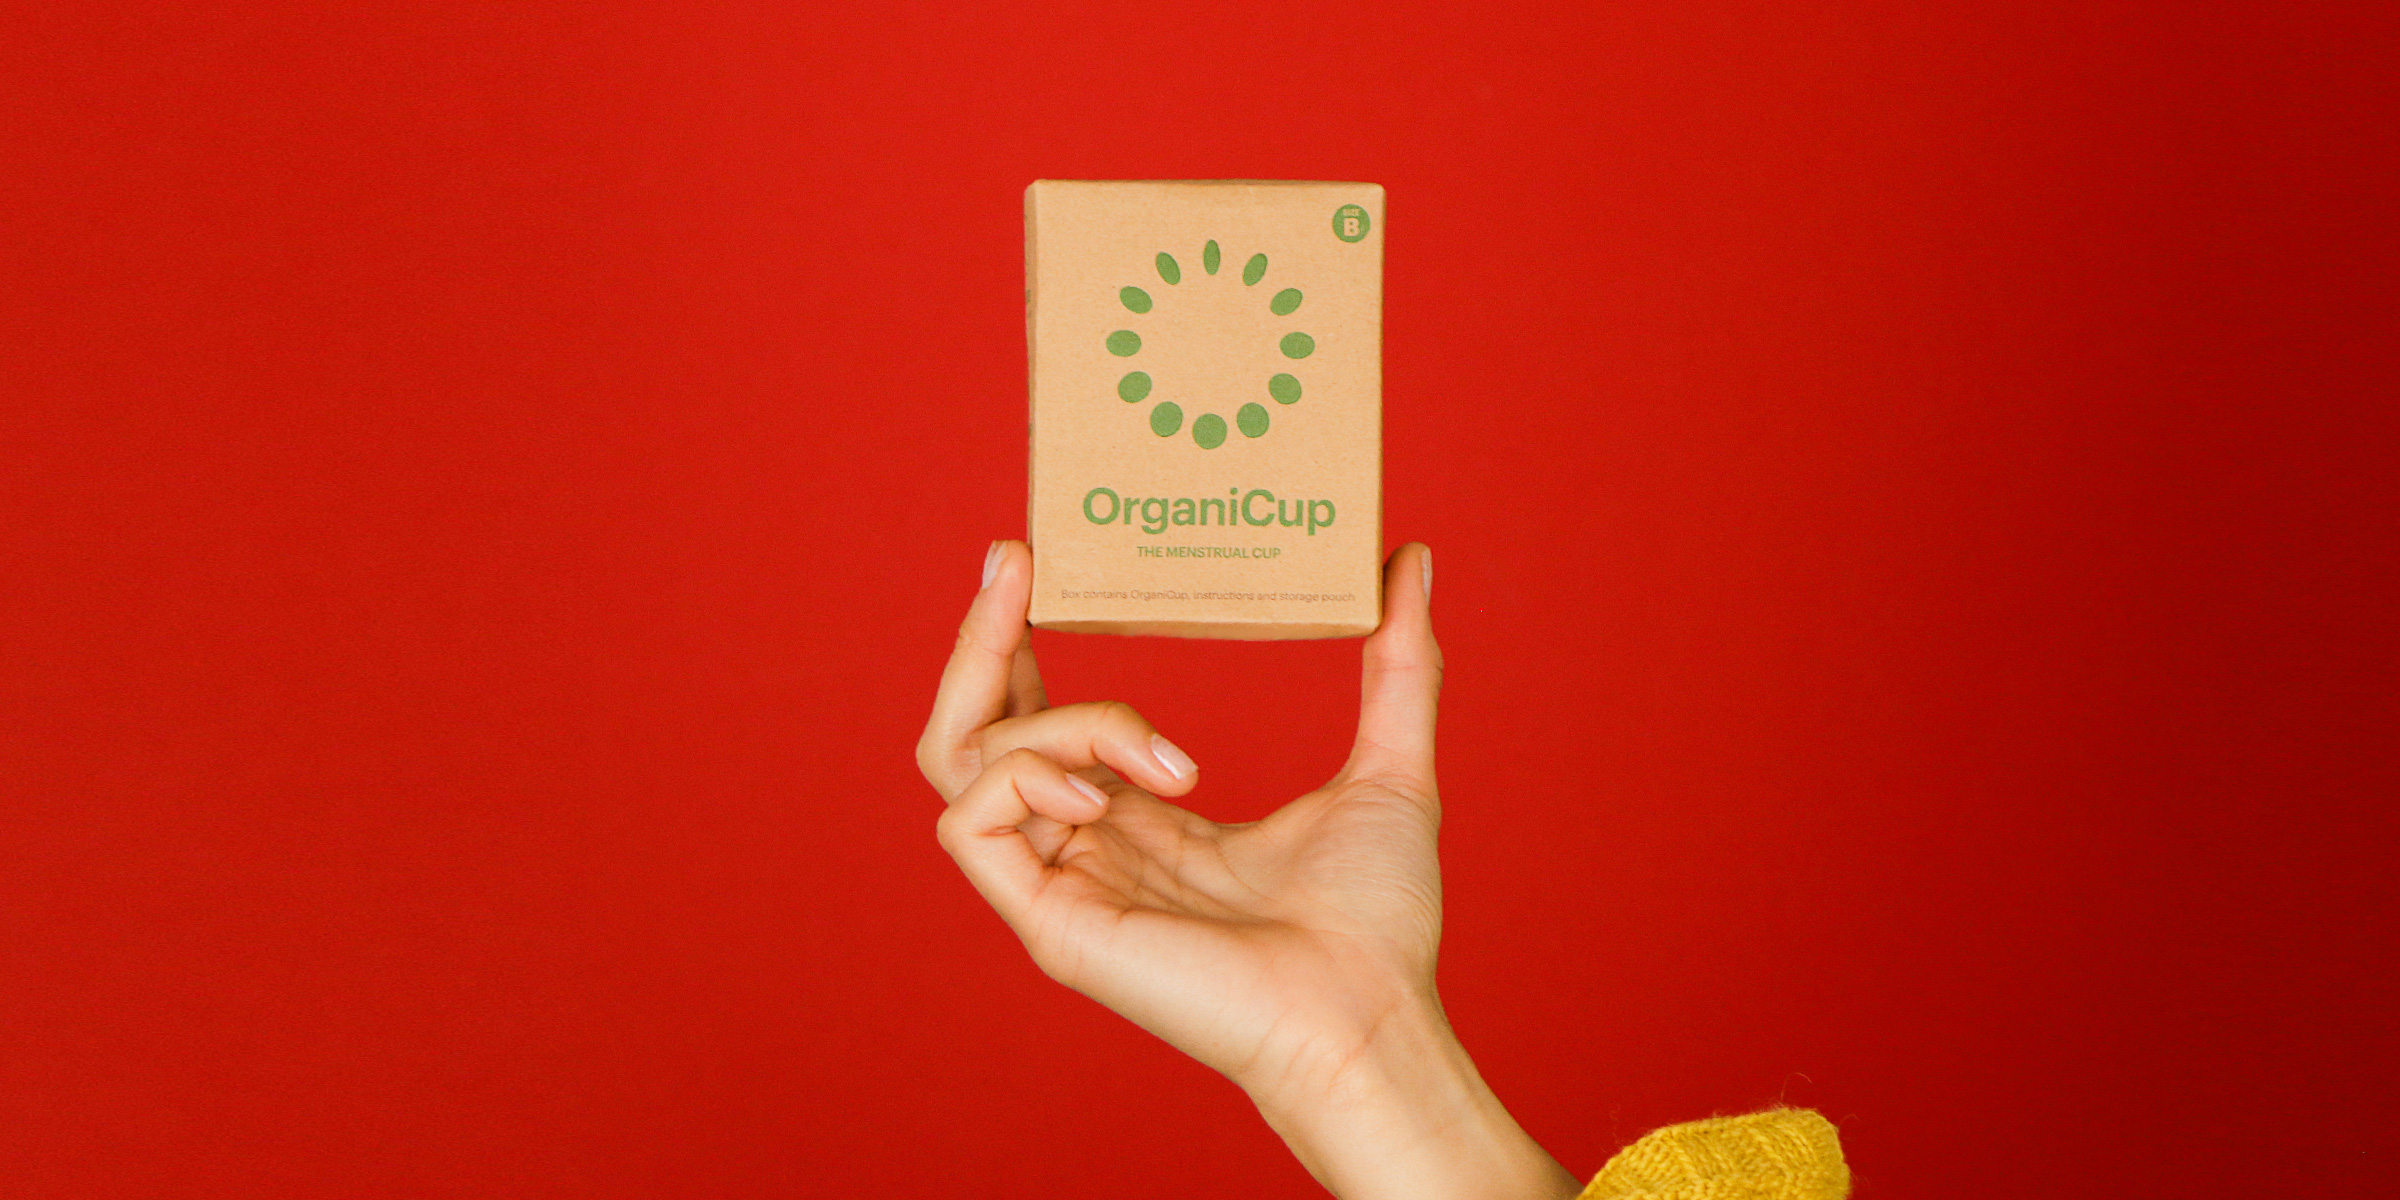 Photo of someone holding the OrganiCup packaging